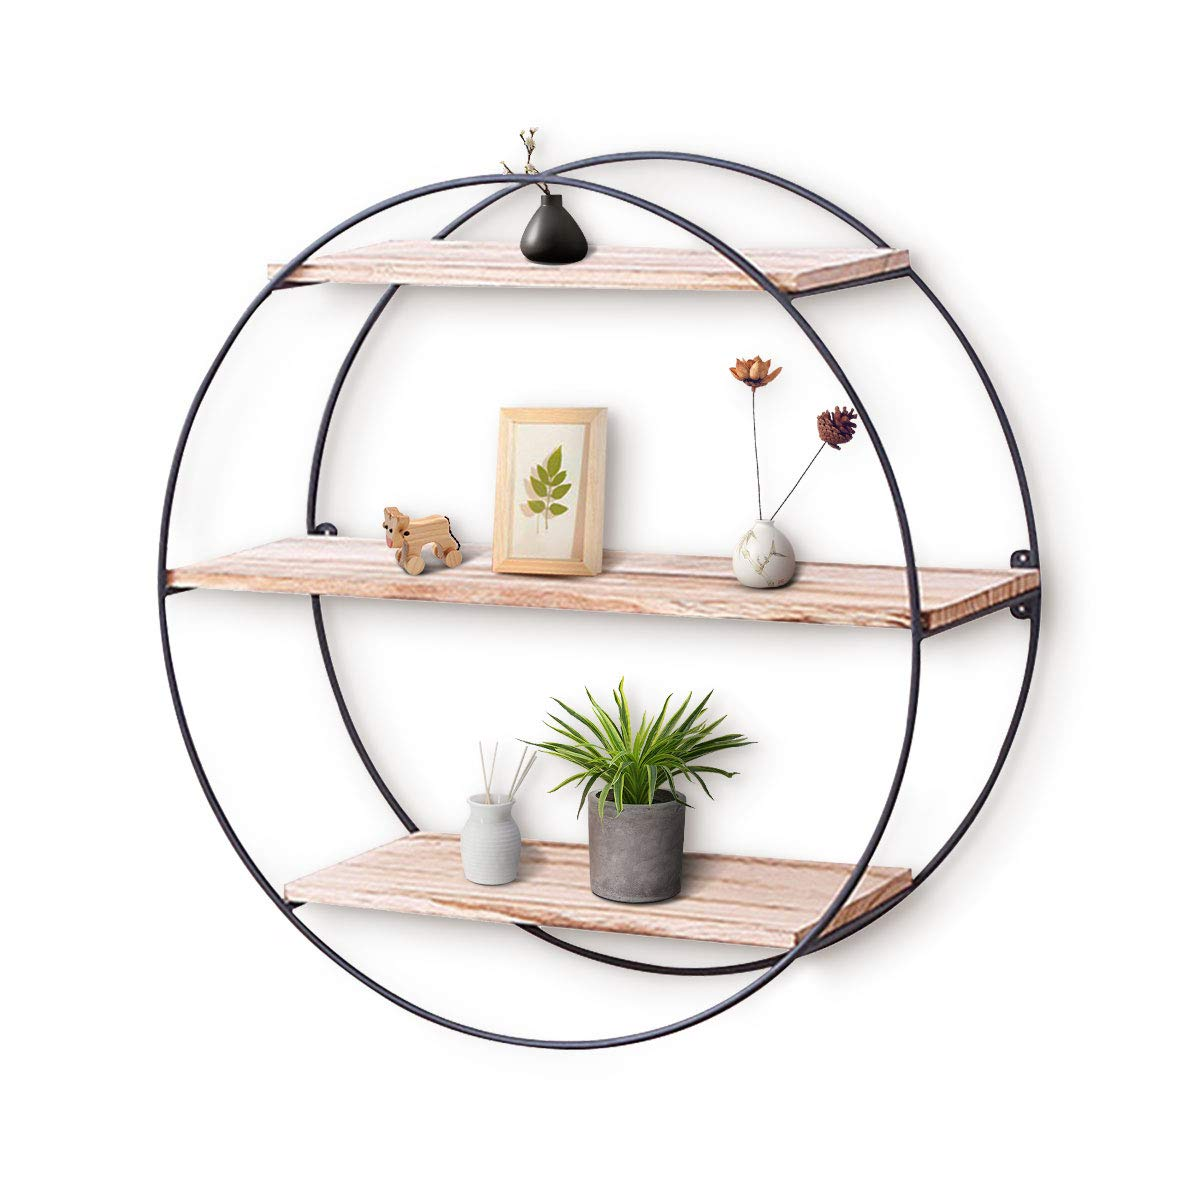 king do way Wall Shelf Rustic Wood Floating Shelves,Decorative Wall Shelf for Bedroom, Living Room, Bathroom, Kitchen, Office and More (Round) by king do way